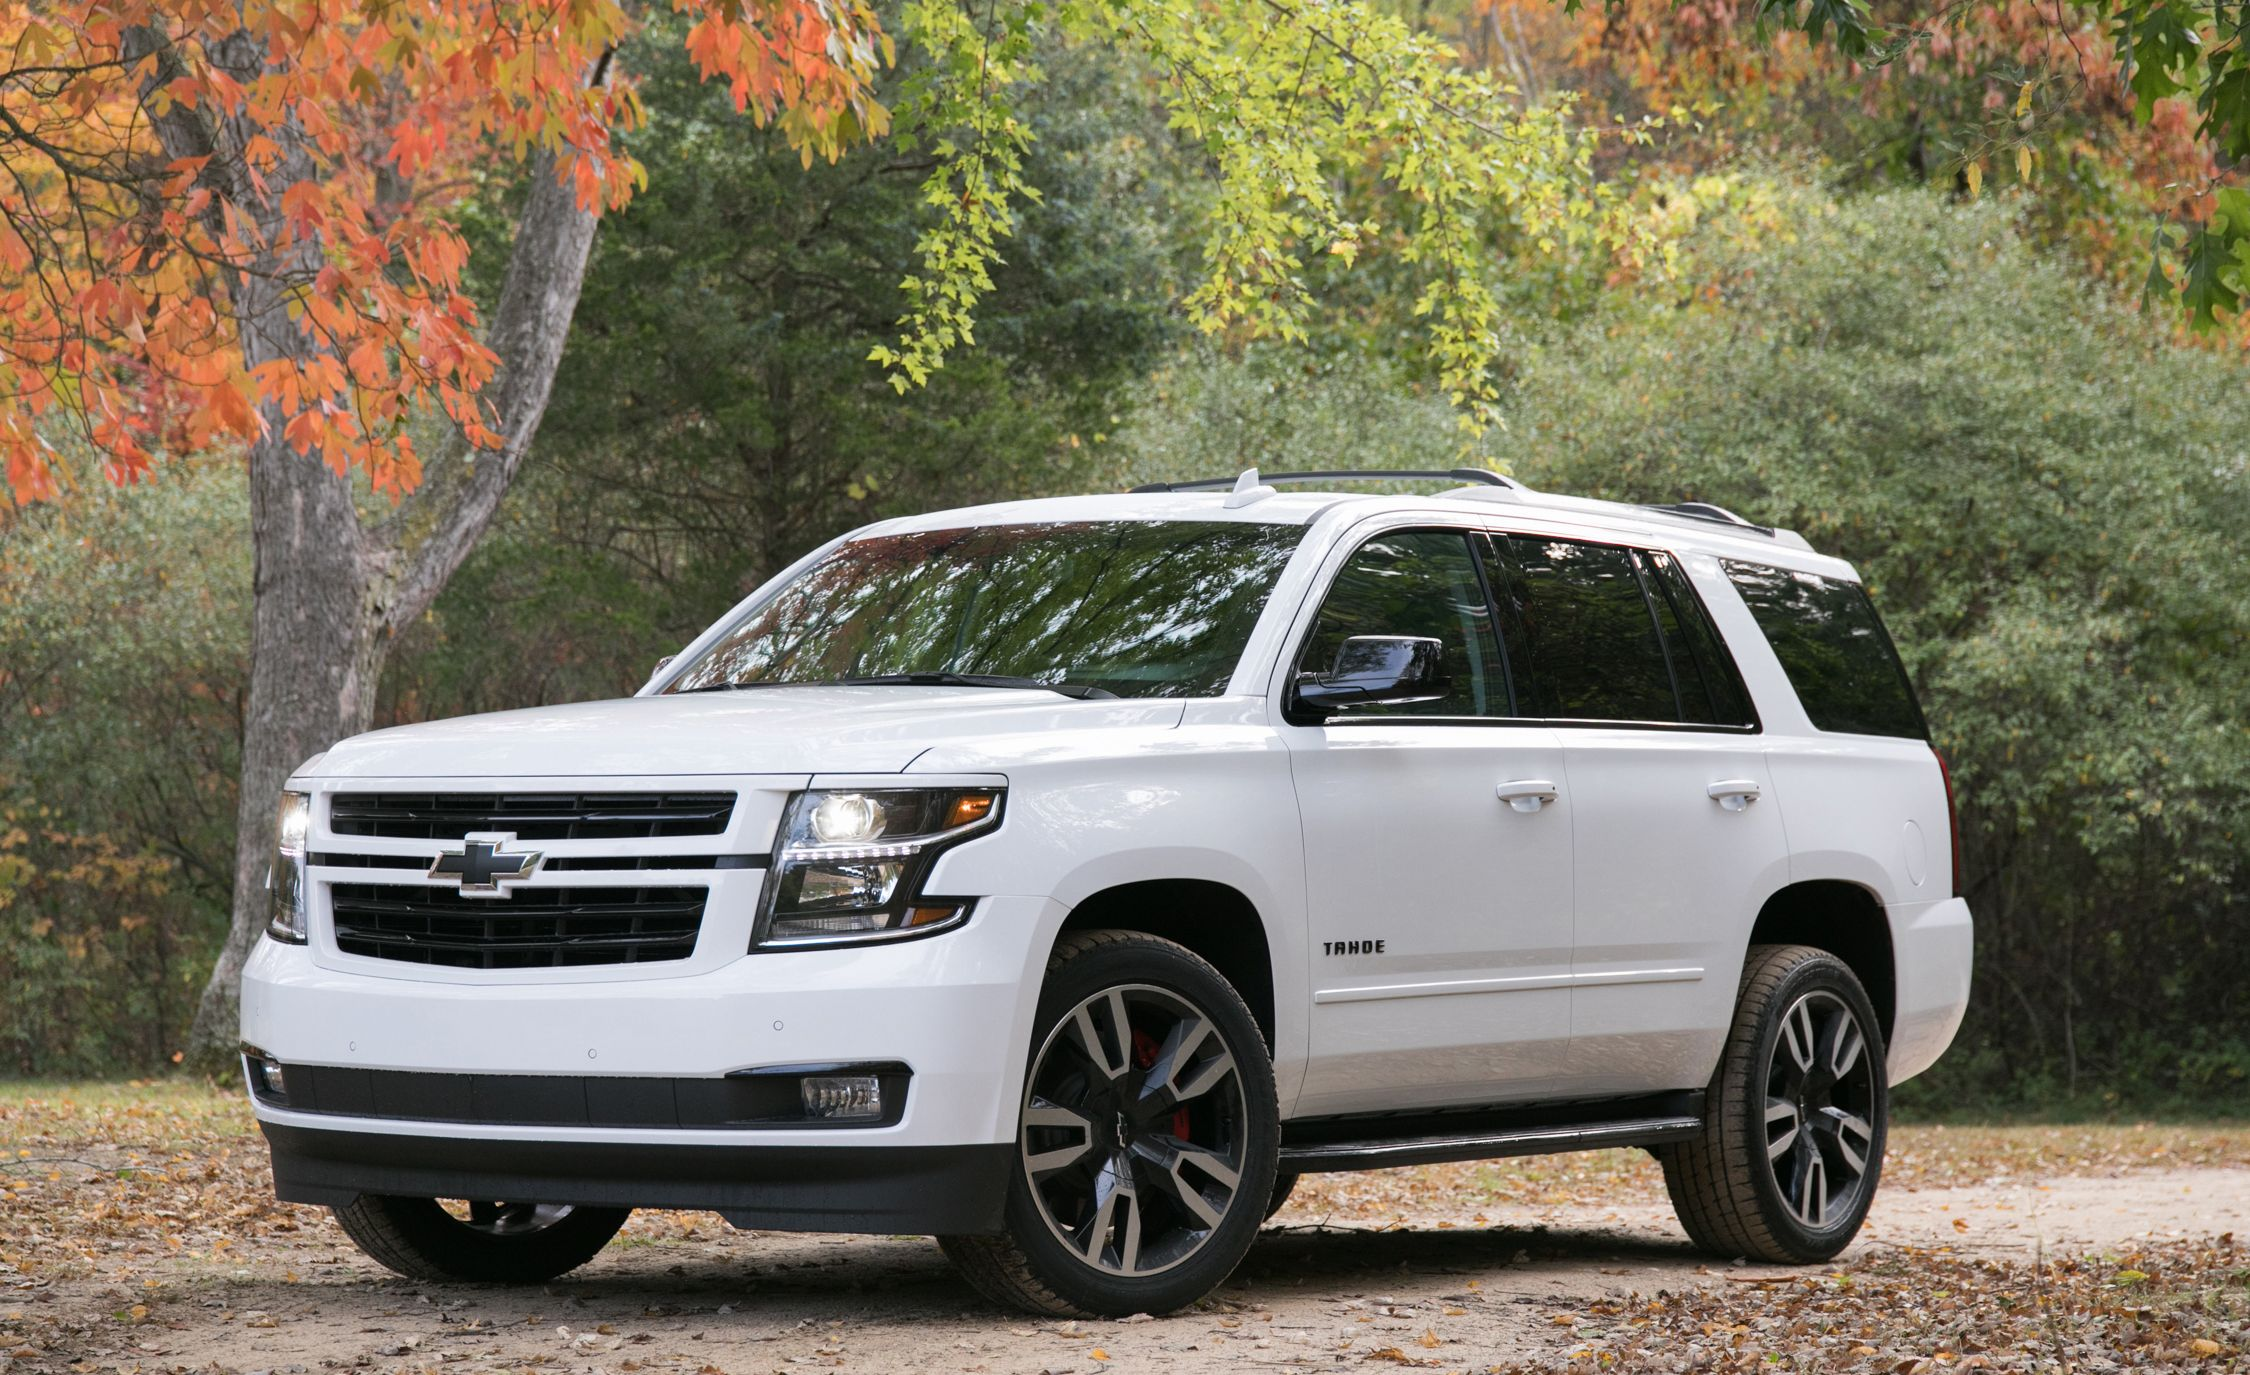 All New Tahoe Then You Can Explore Our Pre Owned Car Inventory To Find At Westside Chevrolet Dealership Houston Tx Chevrolet Tahoe Chevy Tahoe Chevrolet